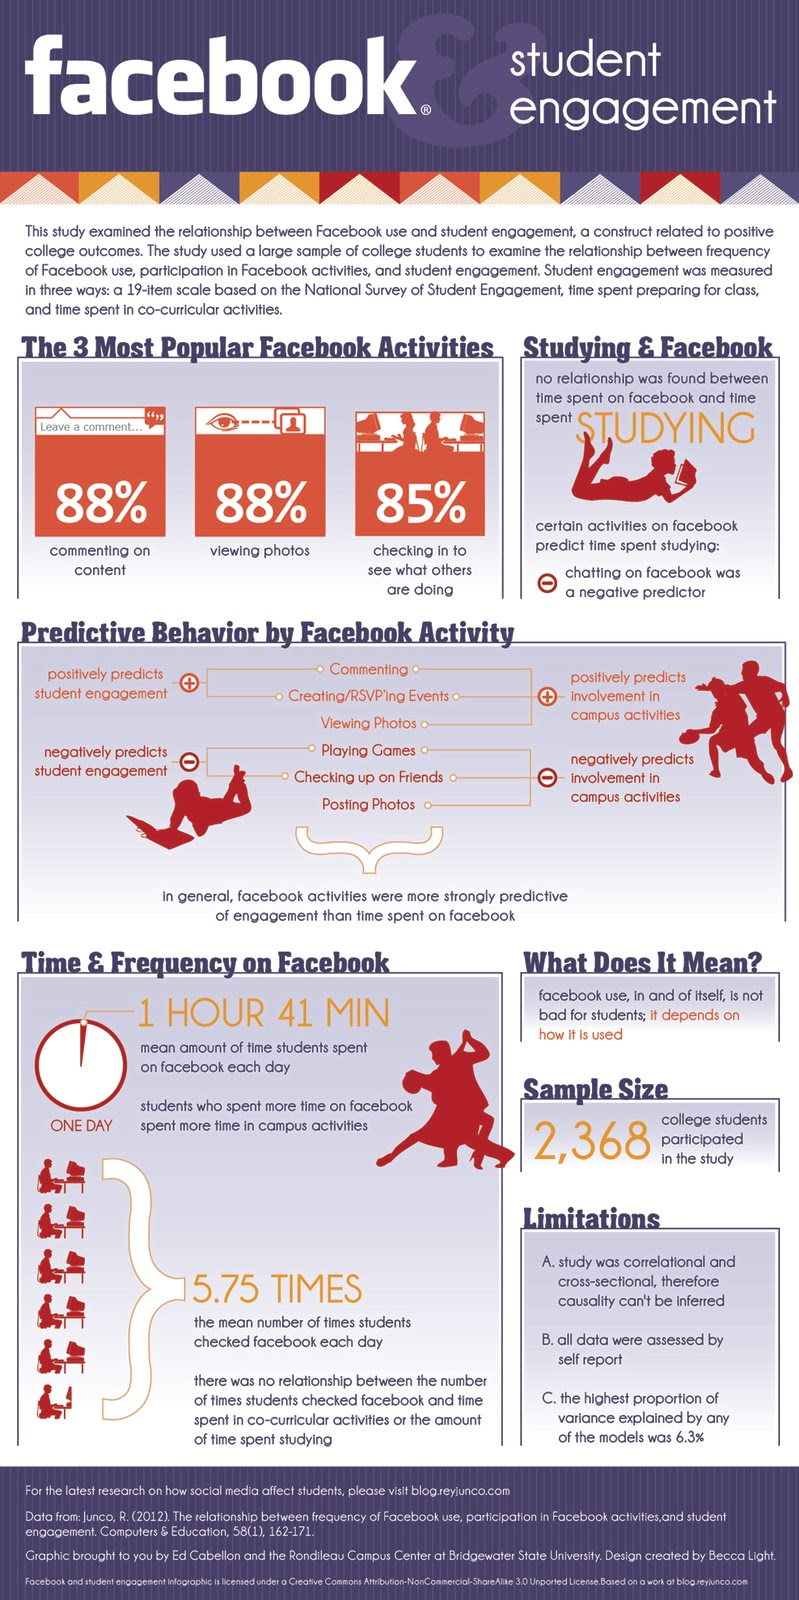 Can Facebook Predict Student Engagement